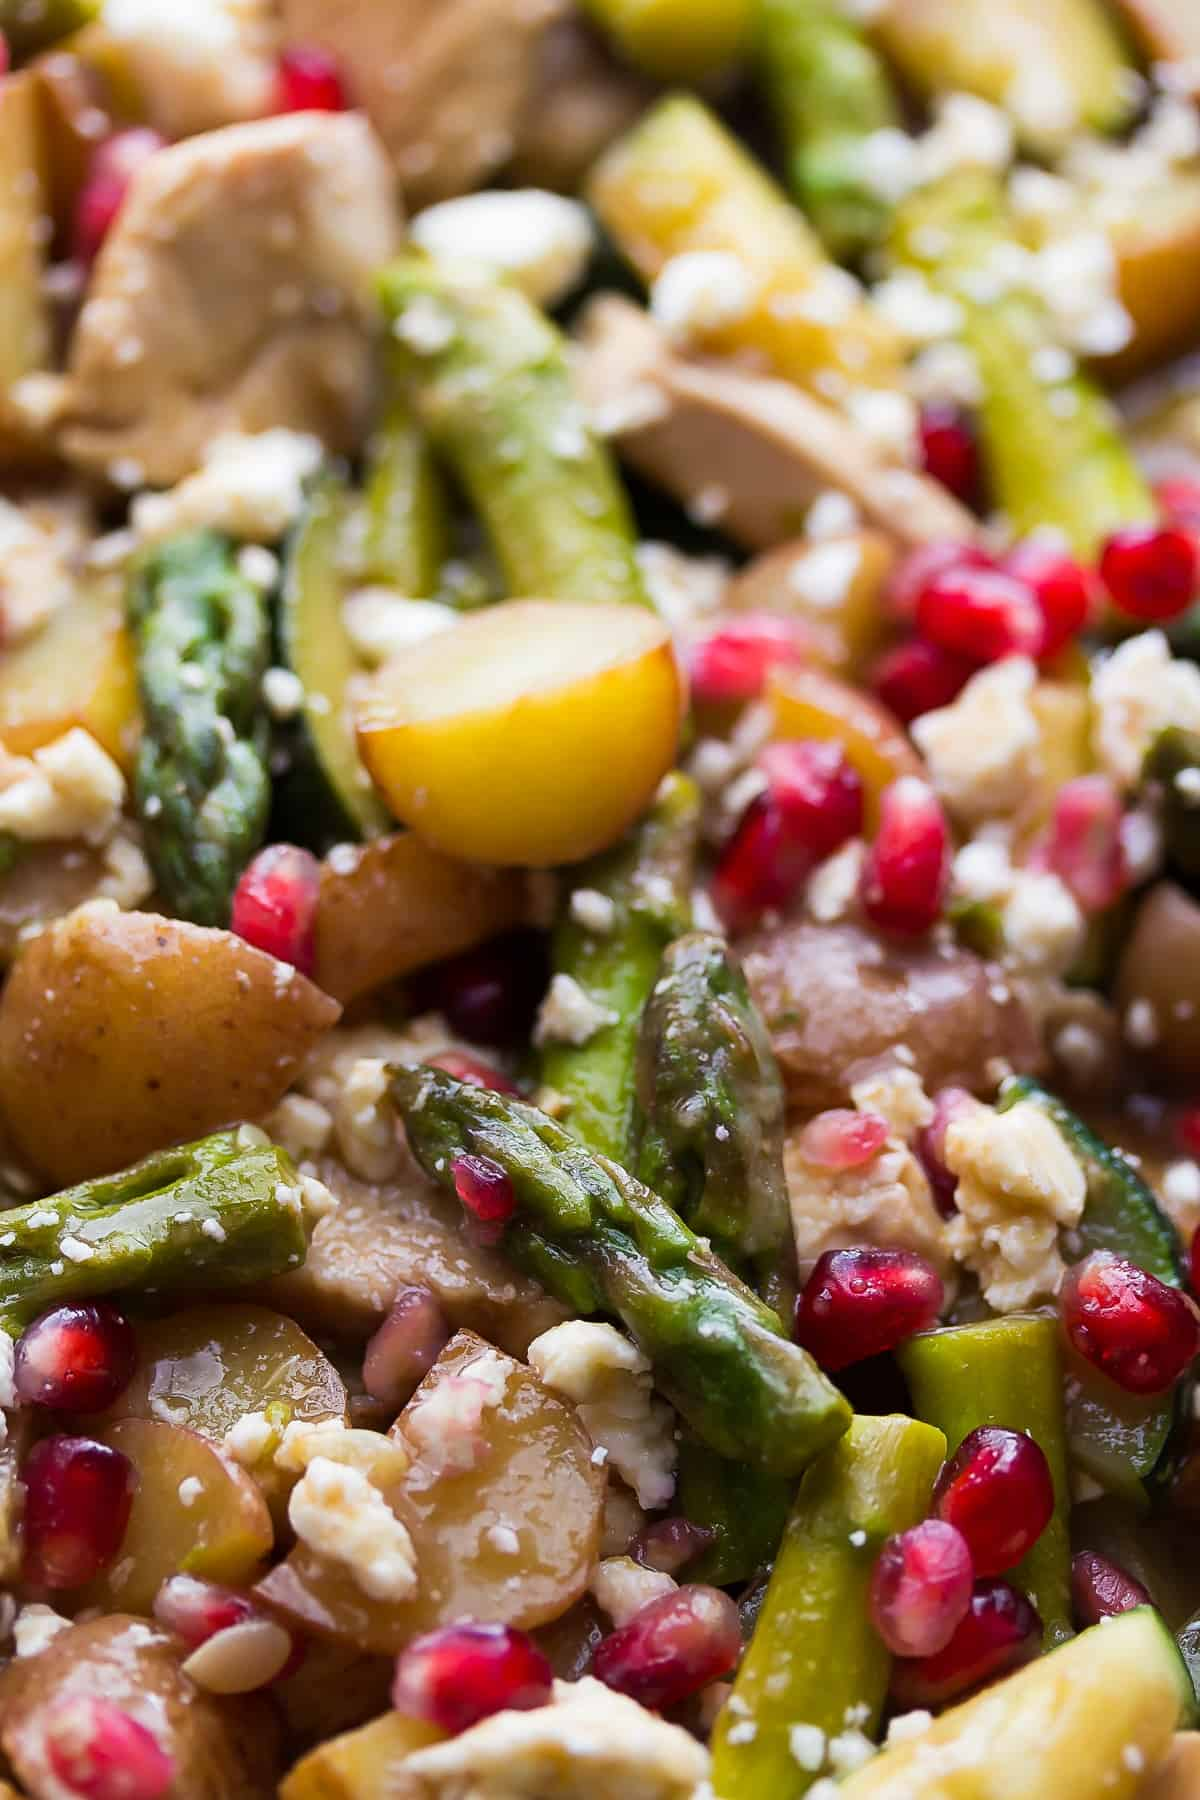 Healthy Balsamic Chicken Skillet with Pomegranates and Feta, a 30 minute, one pot dinner recipe perfect for weeknights!